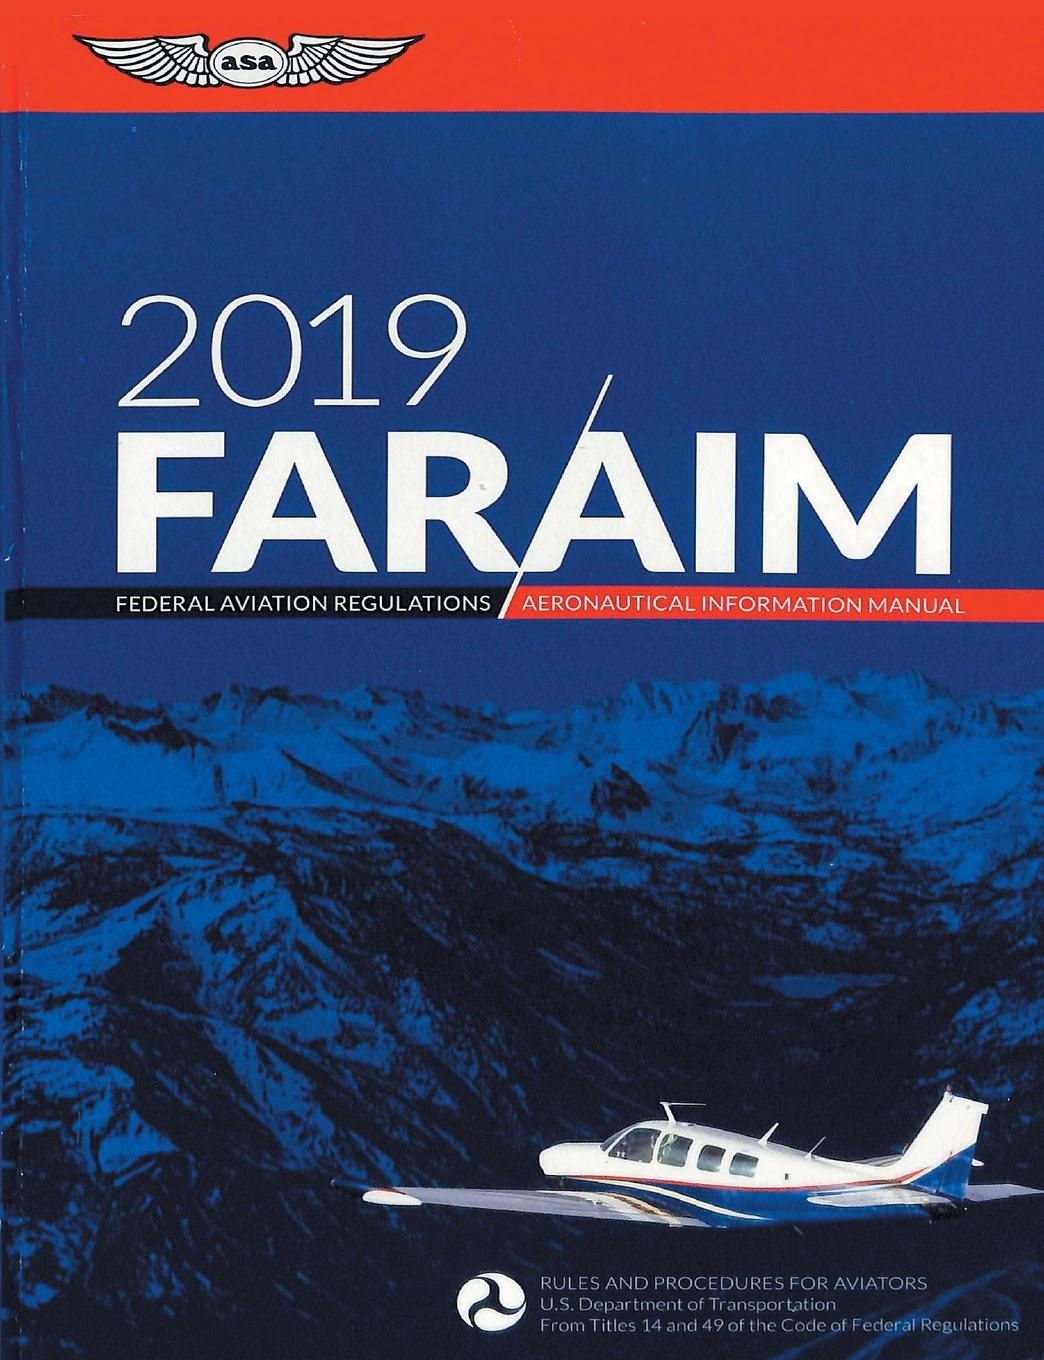 Federal Aviation Administration, Aviation Supplies & Academics, (ASA) (FAA) FAR/AIM 2019. Federal Aviation Regulations / Aeronautical Information Manual (FAR/AIM Series)